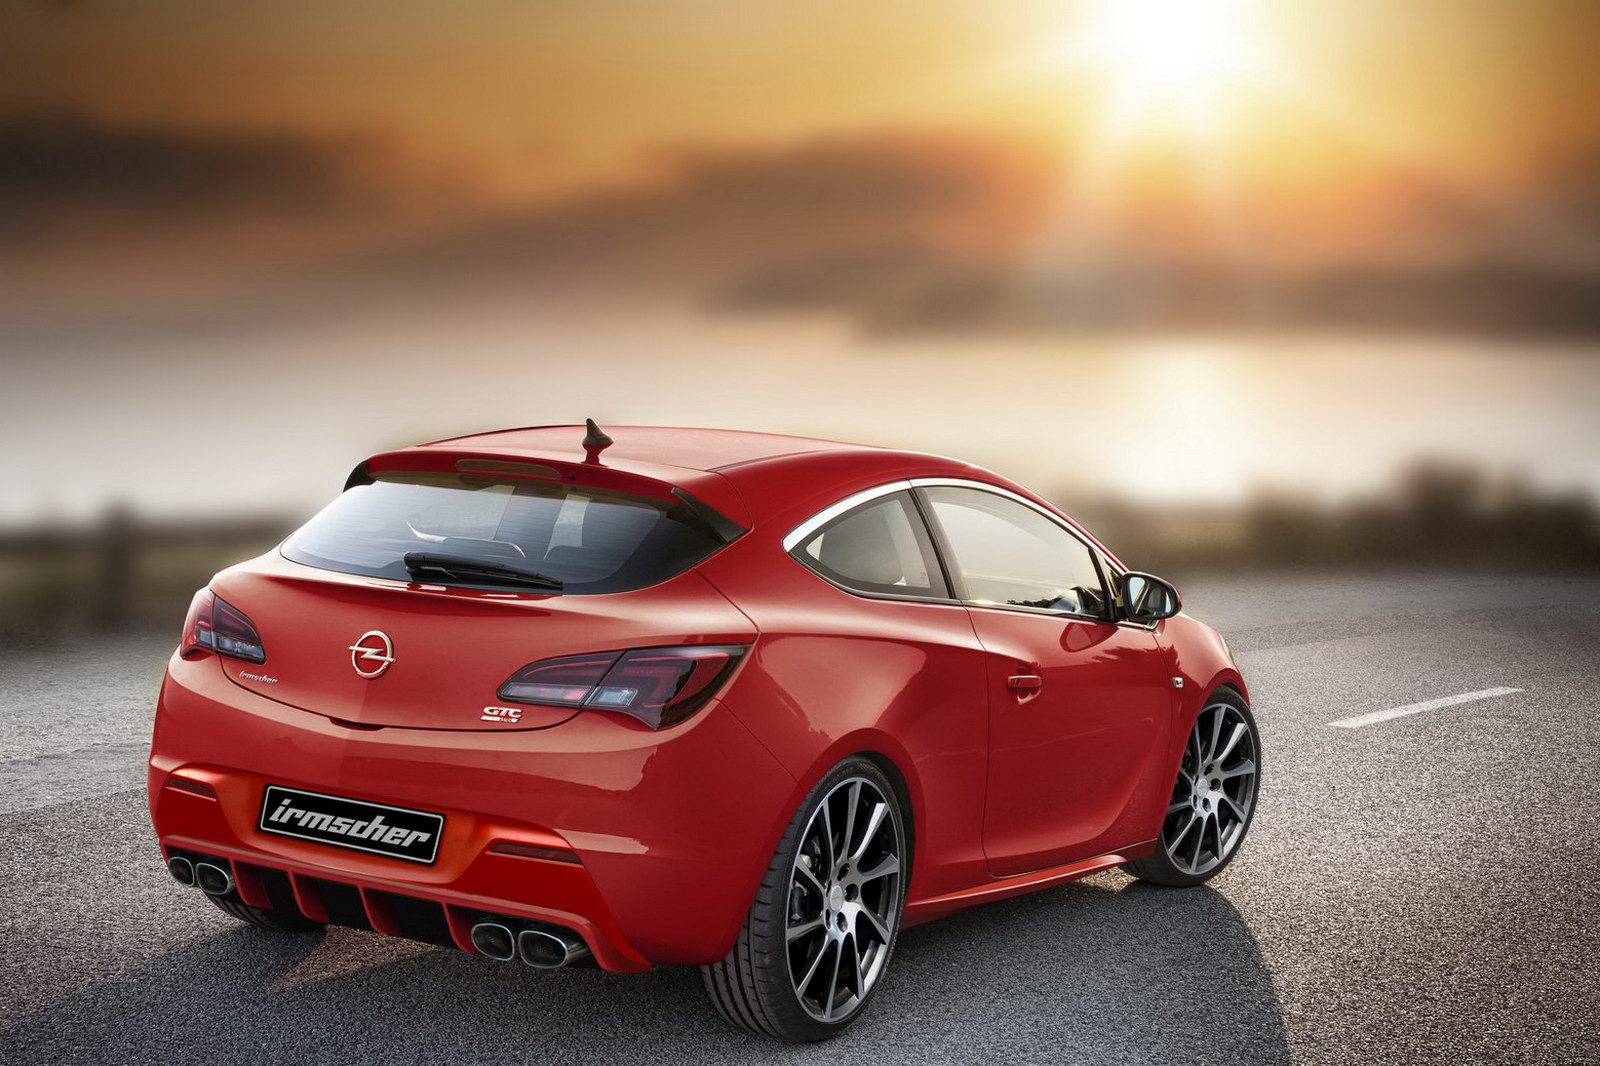 Irmscher Sports New Opel Astra GTC  THE  NEW OPEL ASTRA GTC TO PREMIERE IN FRANKFURT MOTOR SHOW